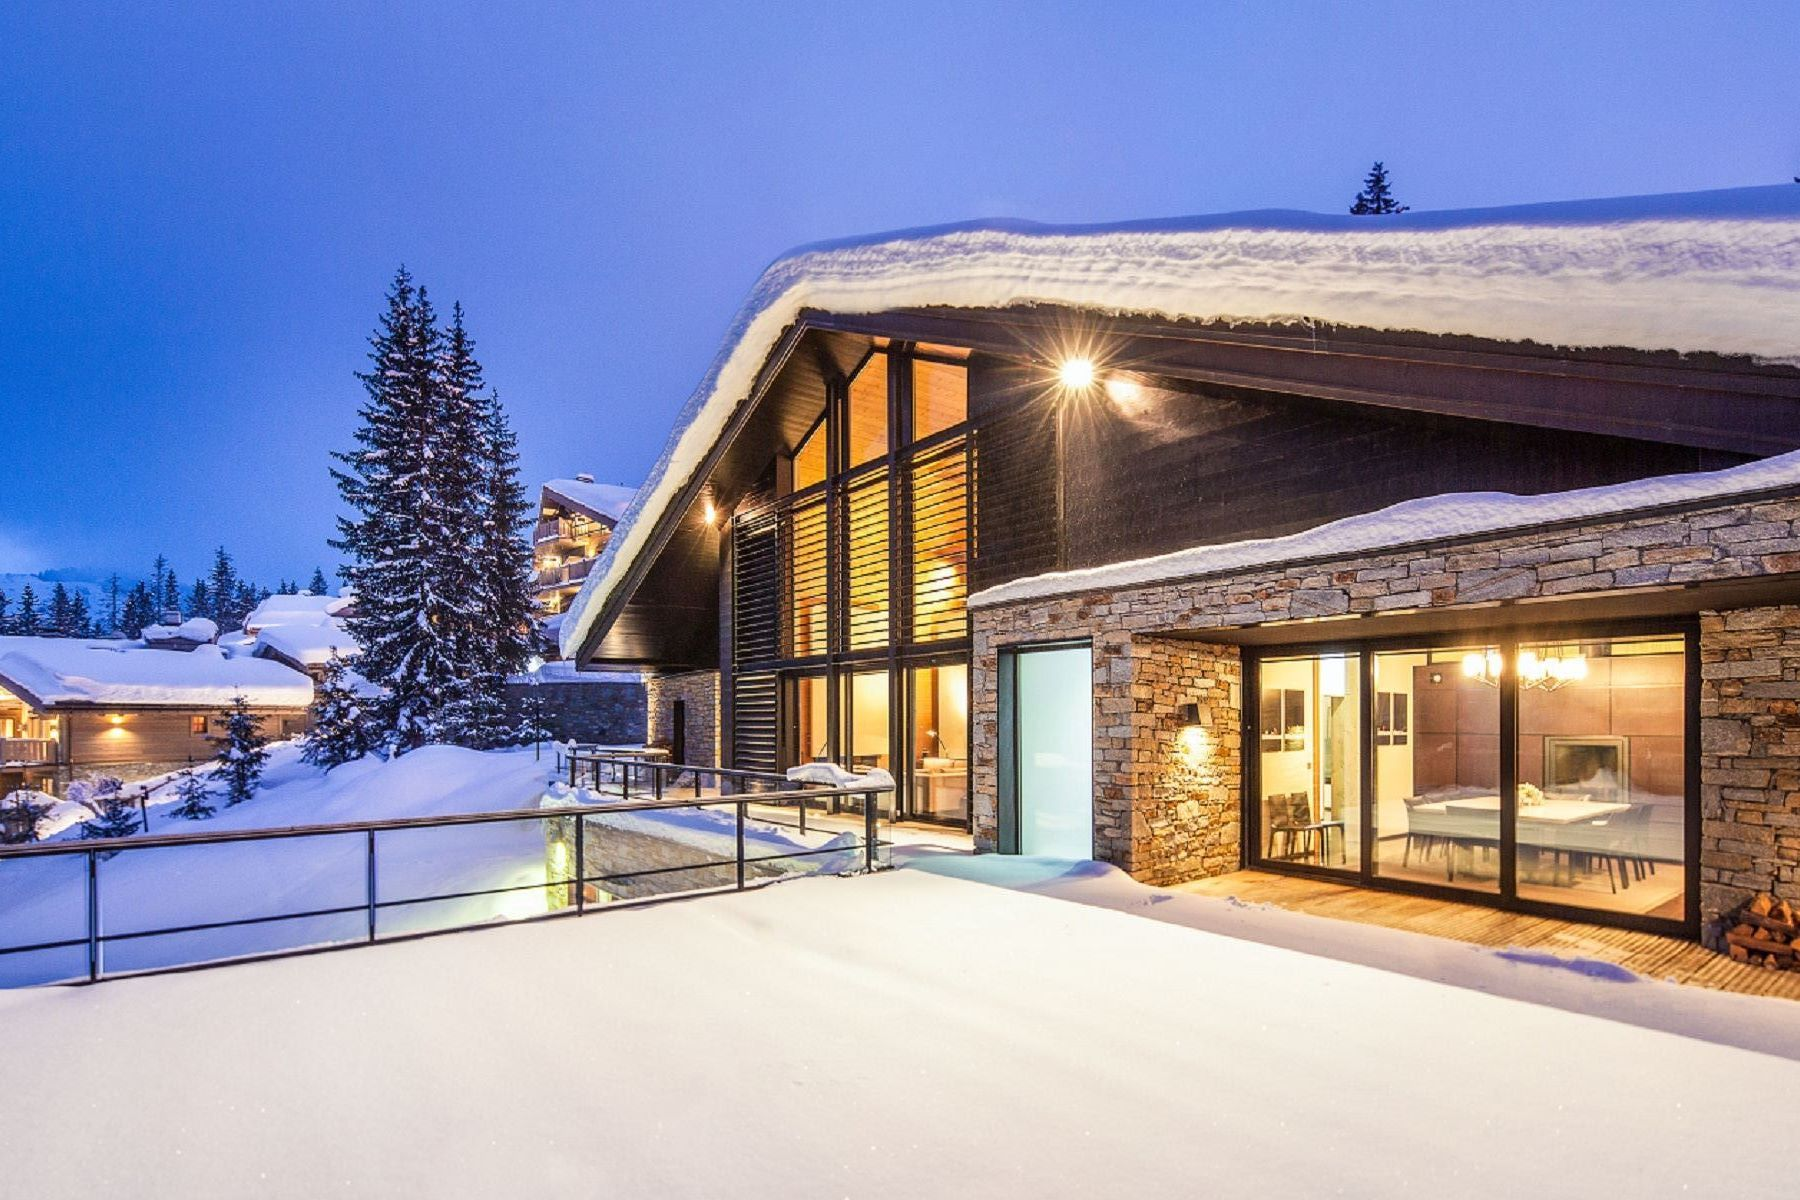 Single Family Home for Rent at Luxury chalet for rent Courchevel Greystone Courchevel, Rhone-Alpes, 73120 France